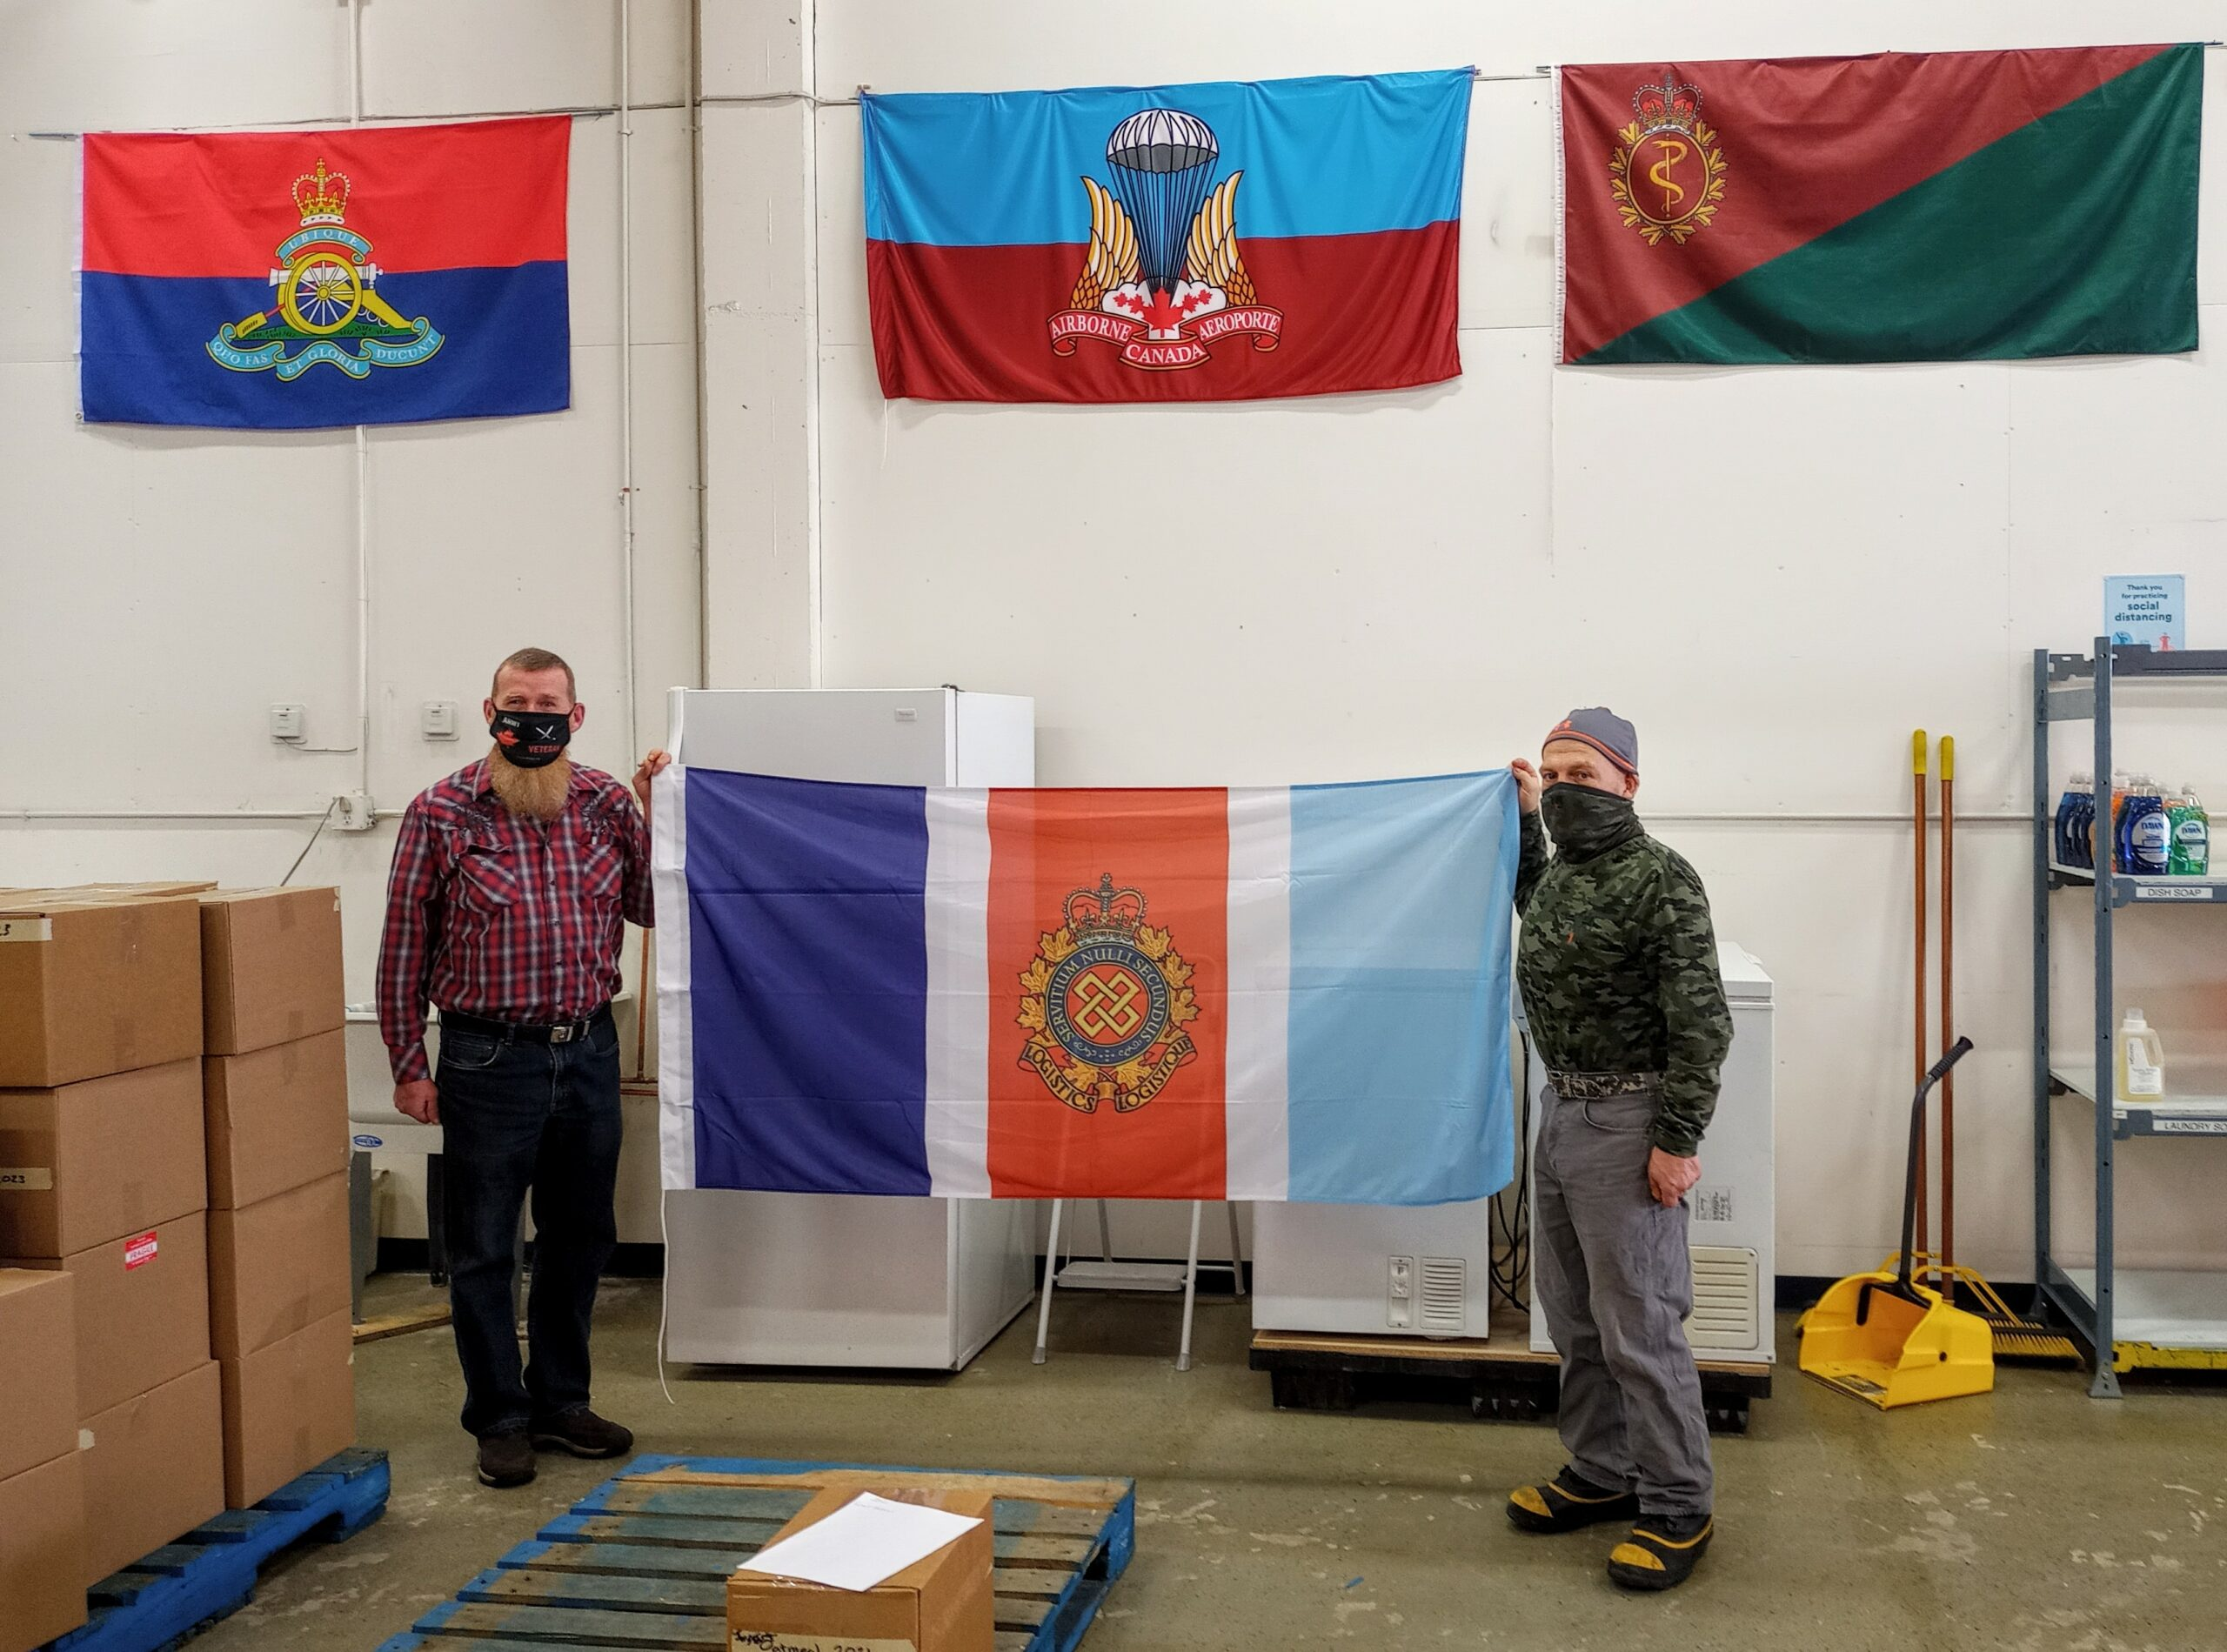 CFLA Flag at Edmonton Veterans Food Bank